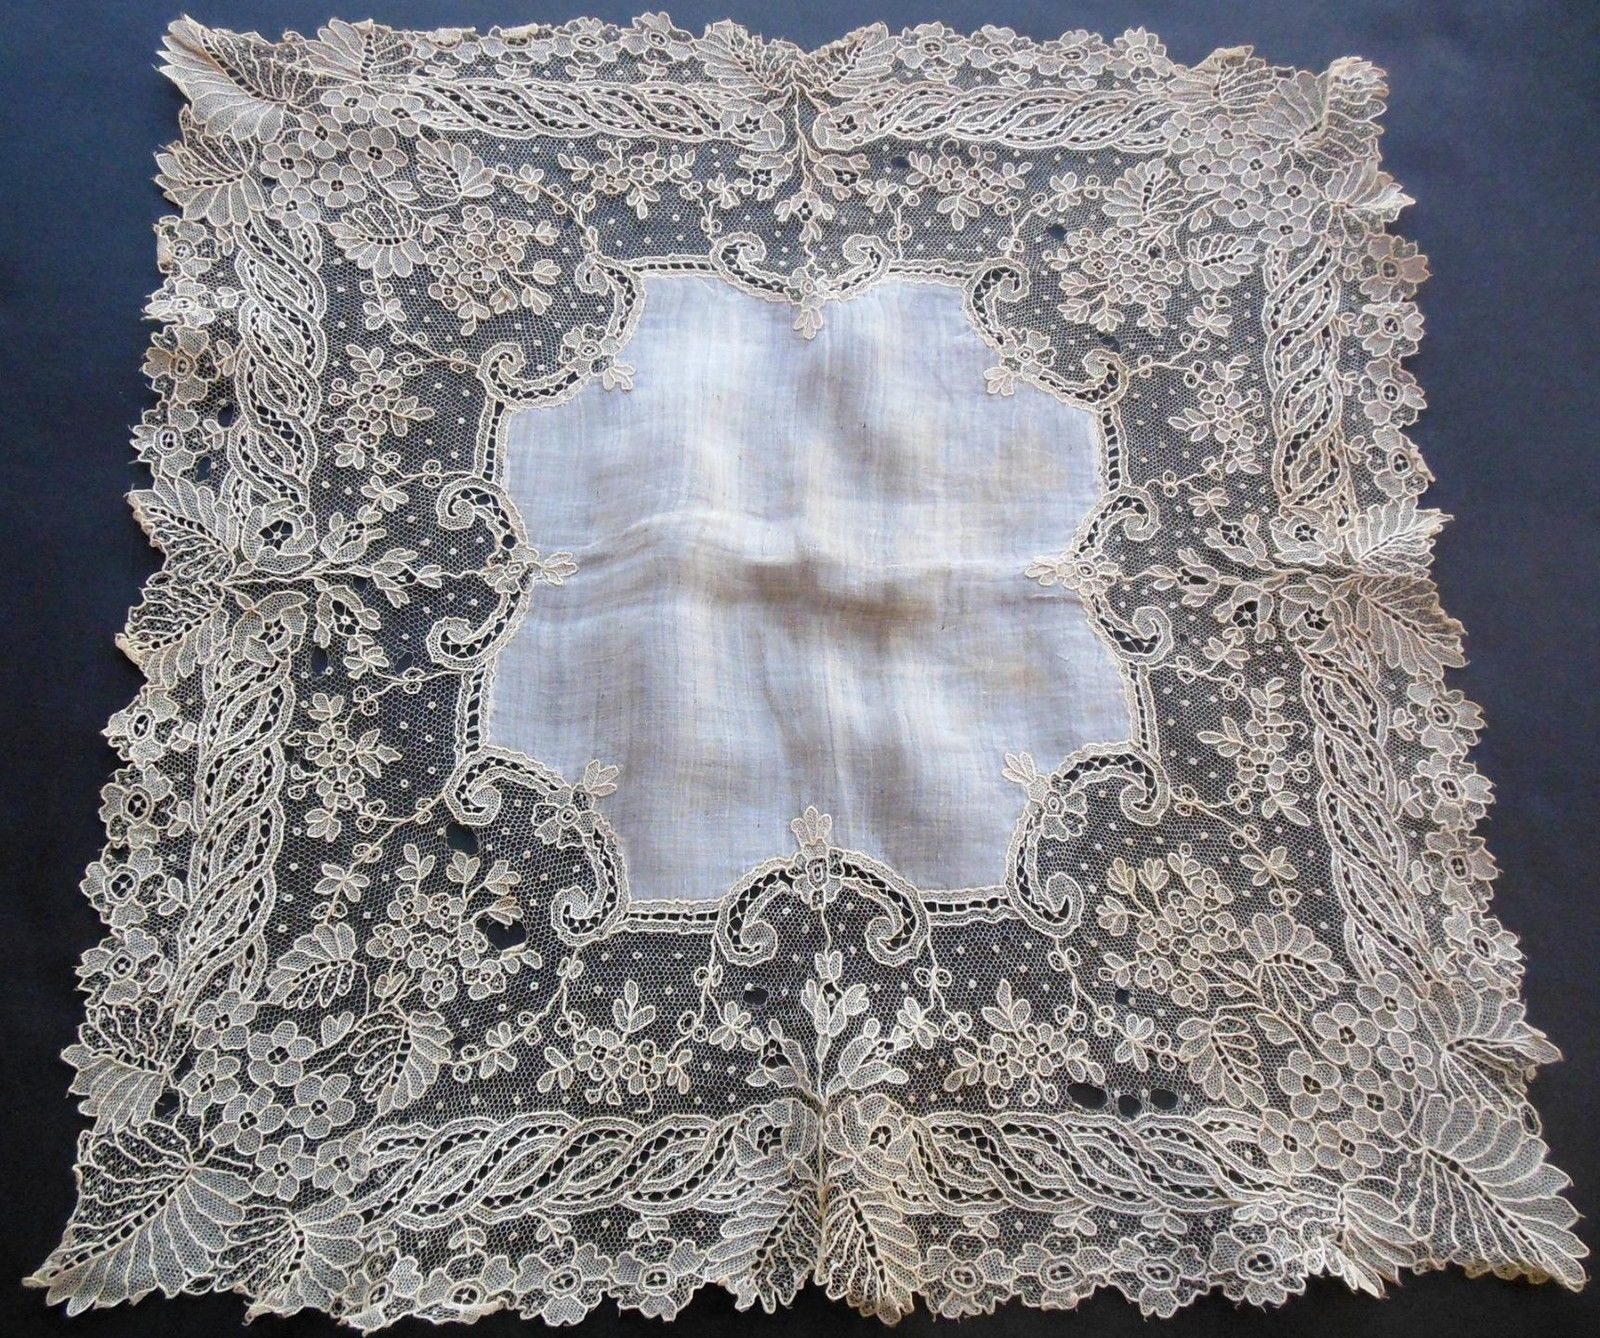 1000 images about needle lace on pinterest antique lace brussels and handkerchiefs. Black Bedroom Furniture Sets. Home Design Ideas